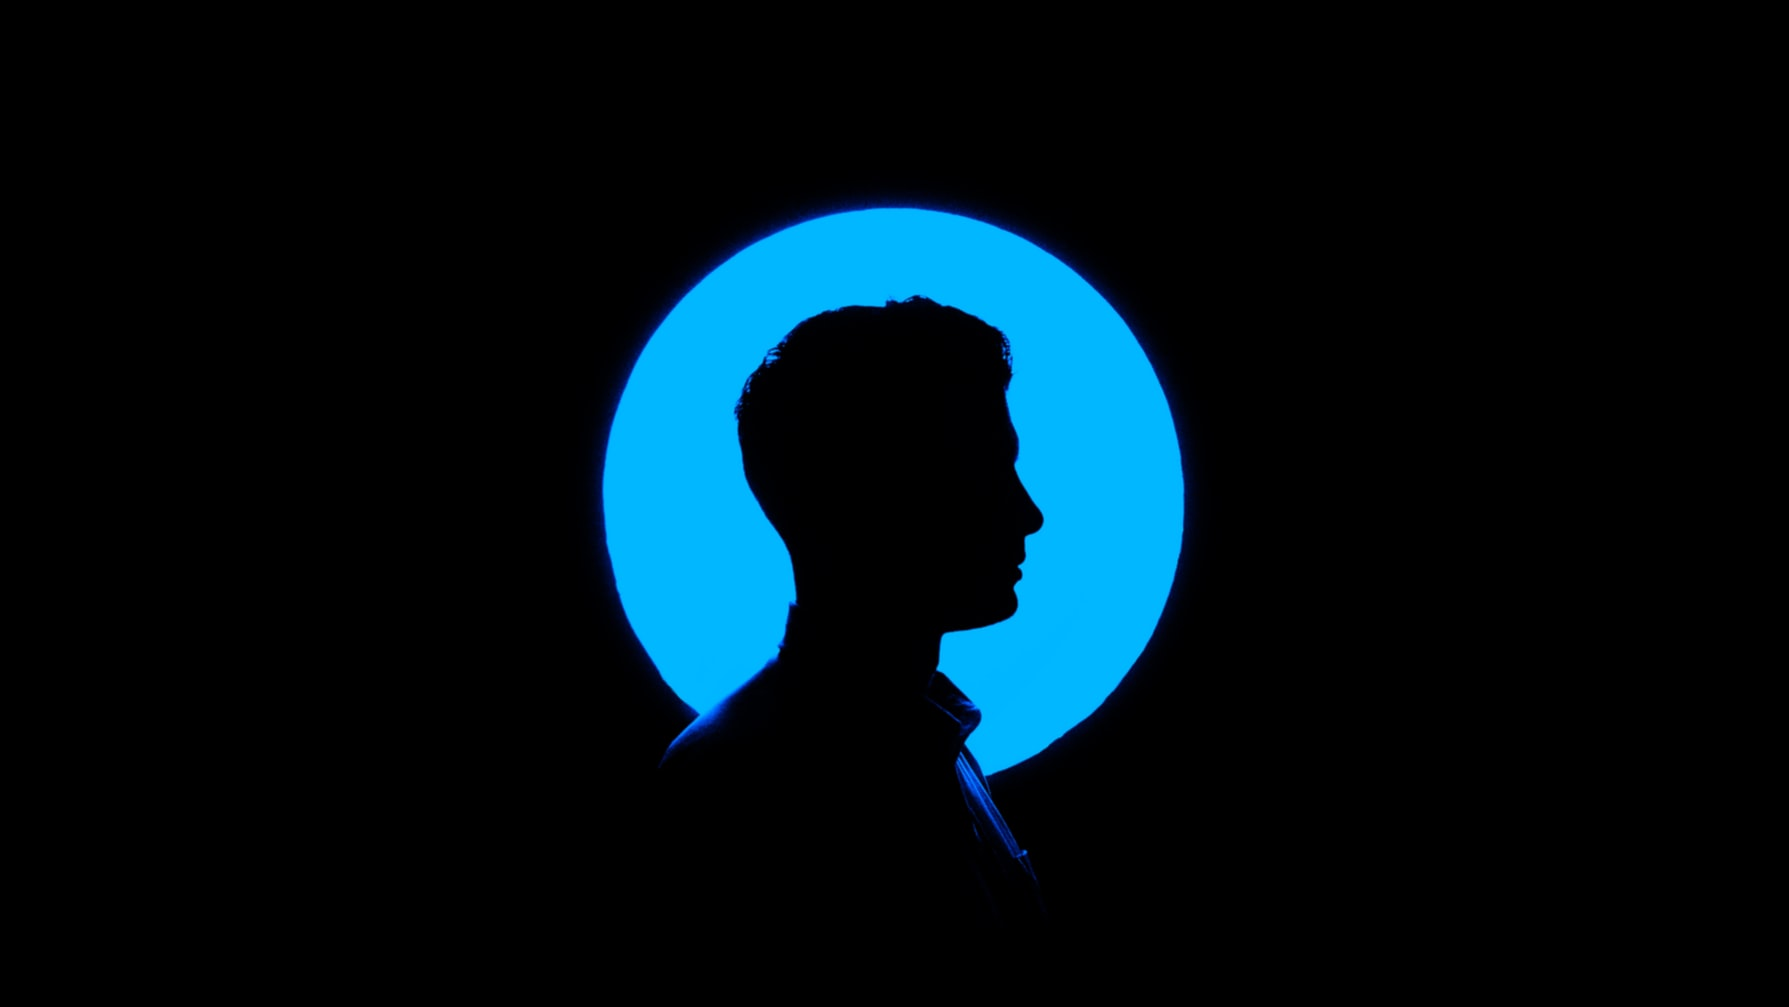 Silhouette of man thinking about something complex